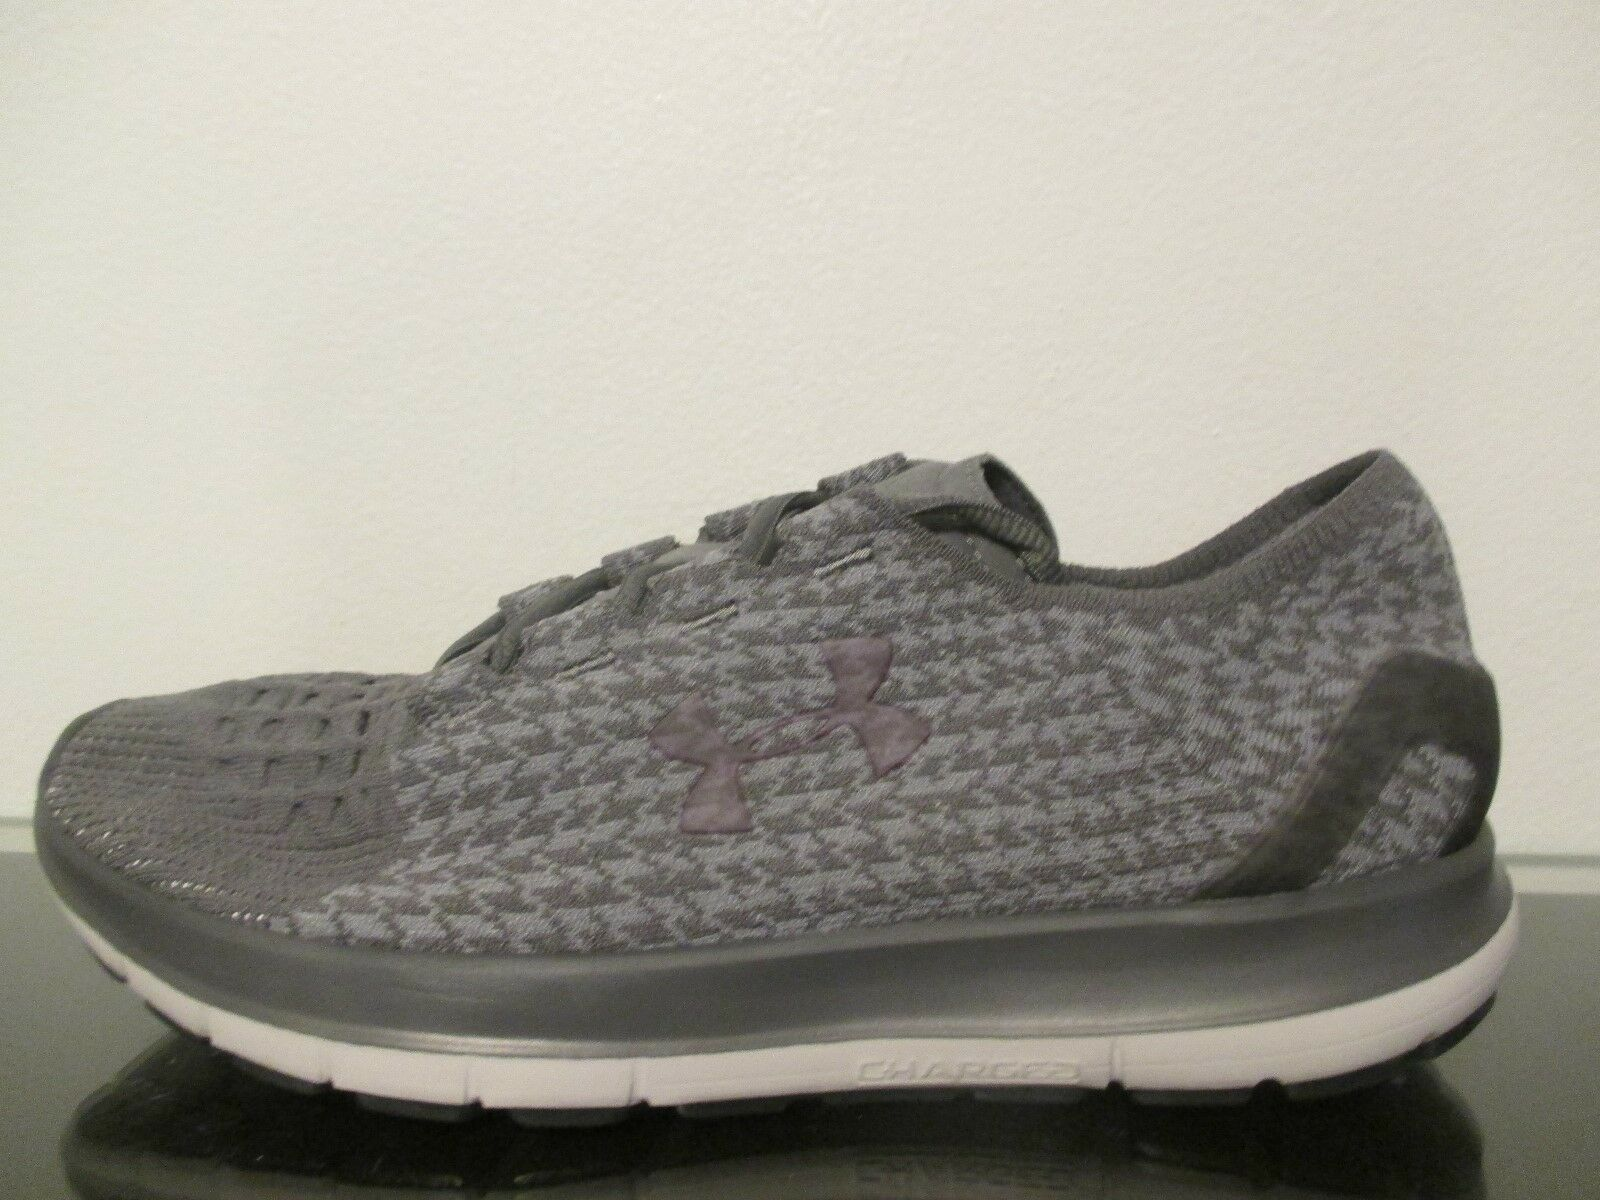 NEW Under Armour Speedform Slingride Running Shoes - Gray - 1297429 040 - Sz 11